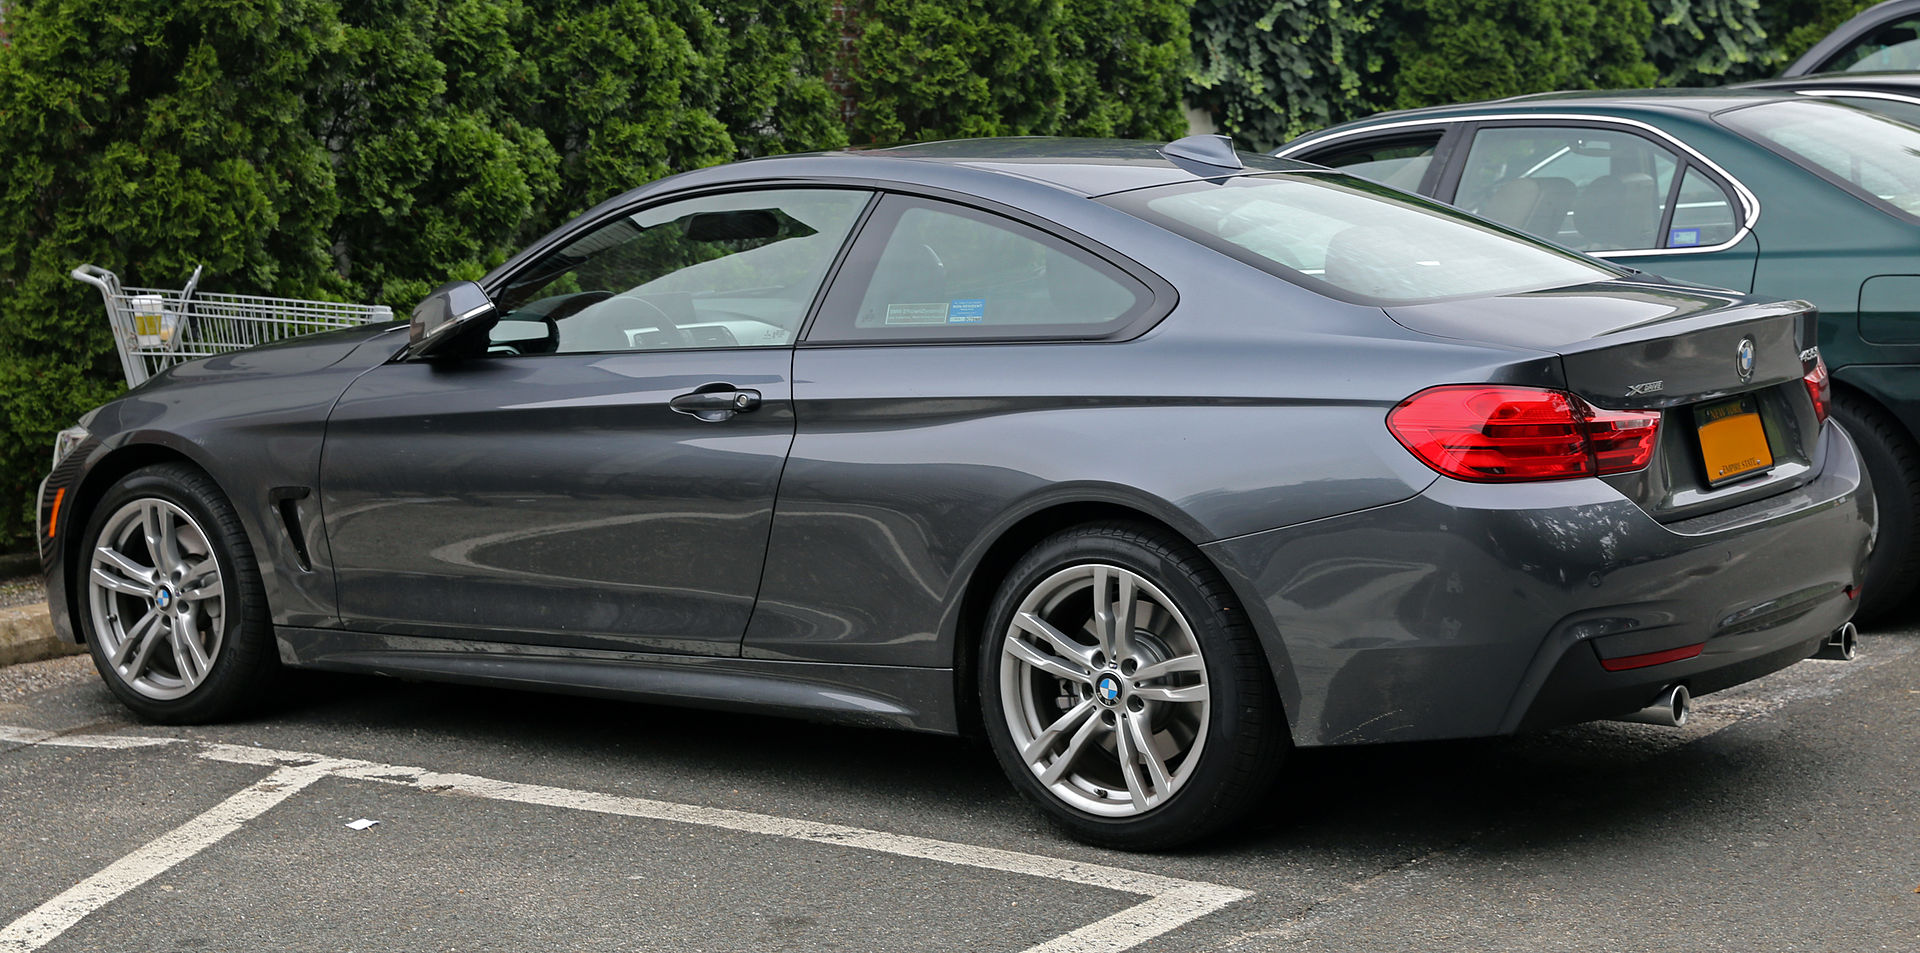 BMW 4 Series (F32) - Wikipedia